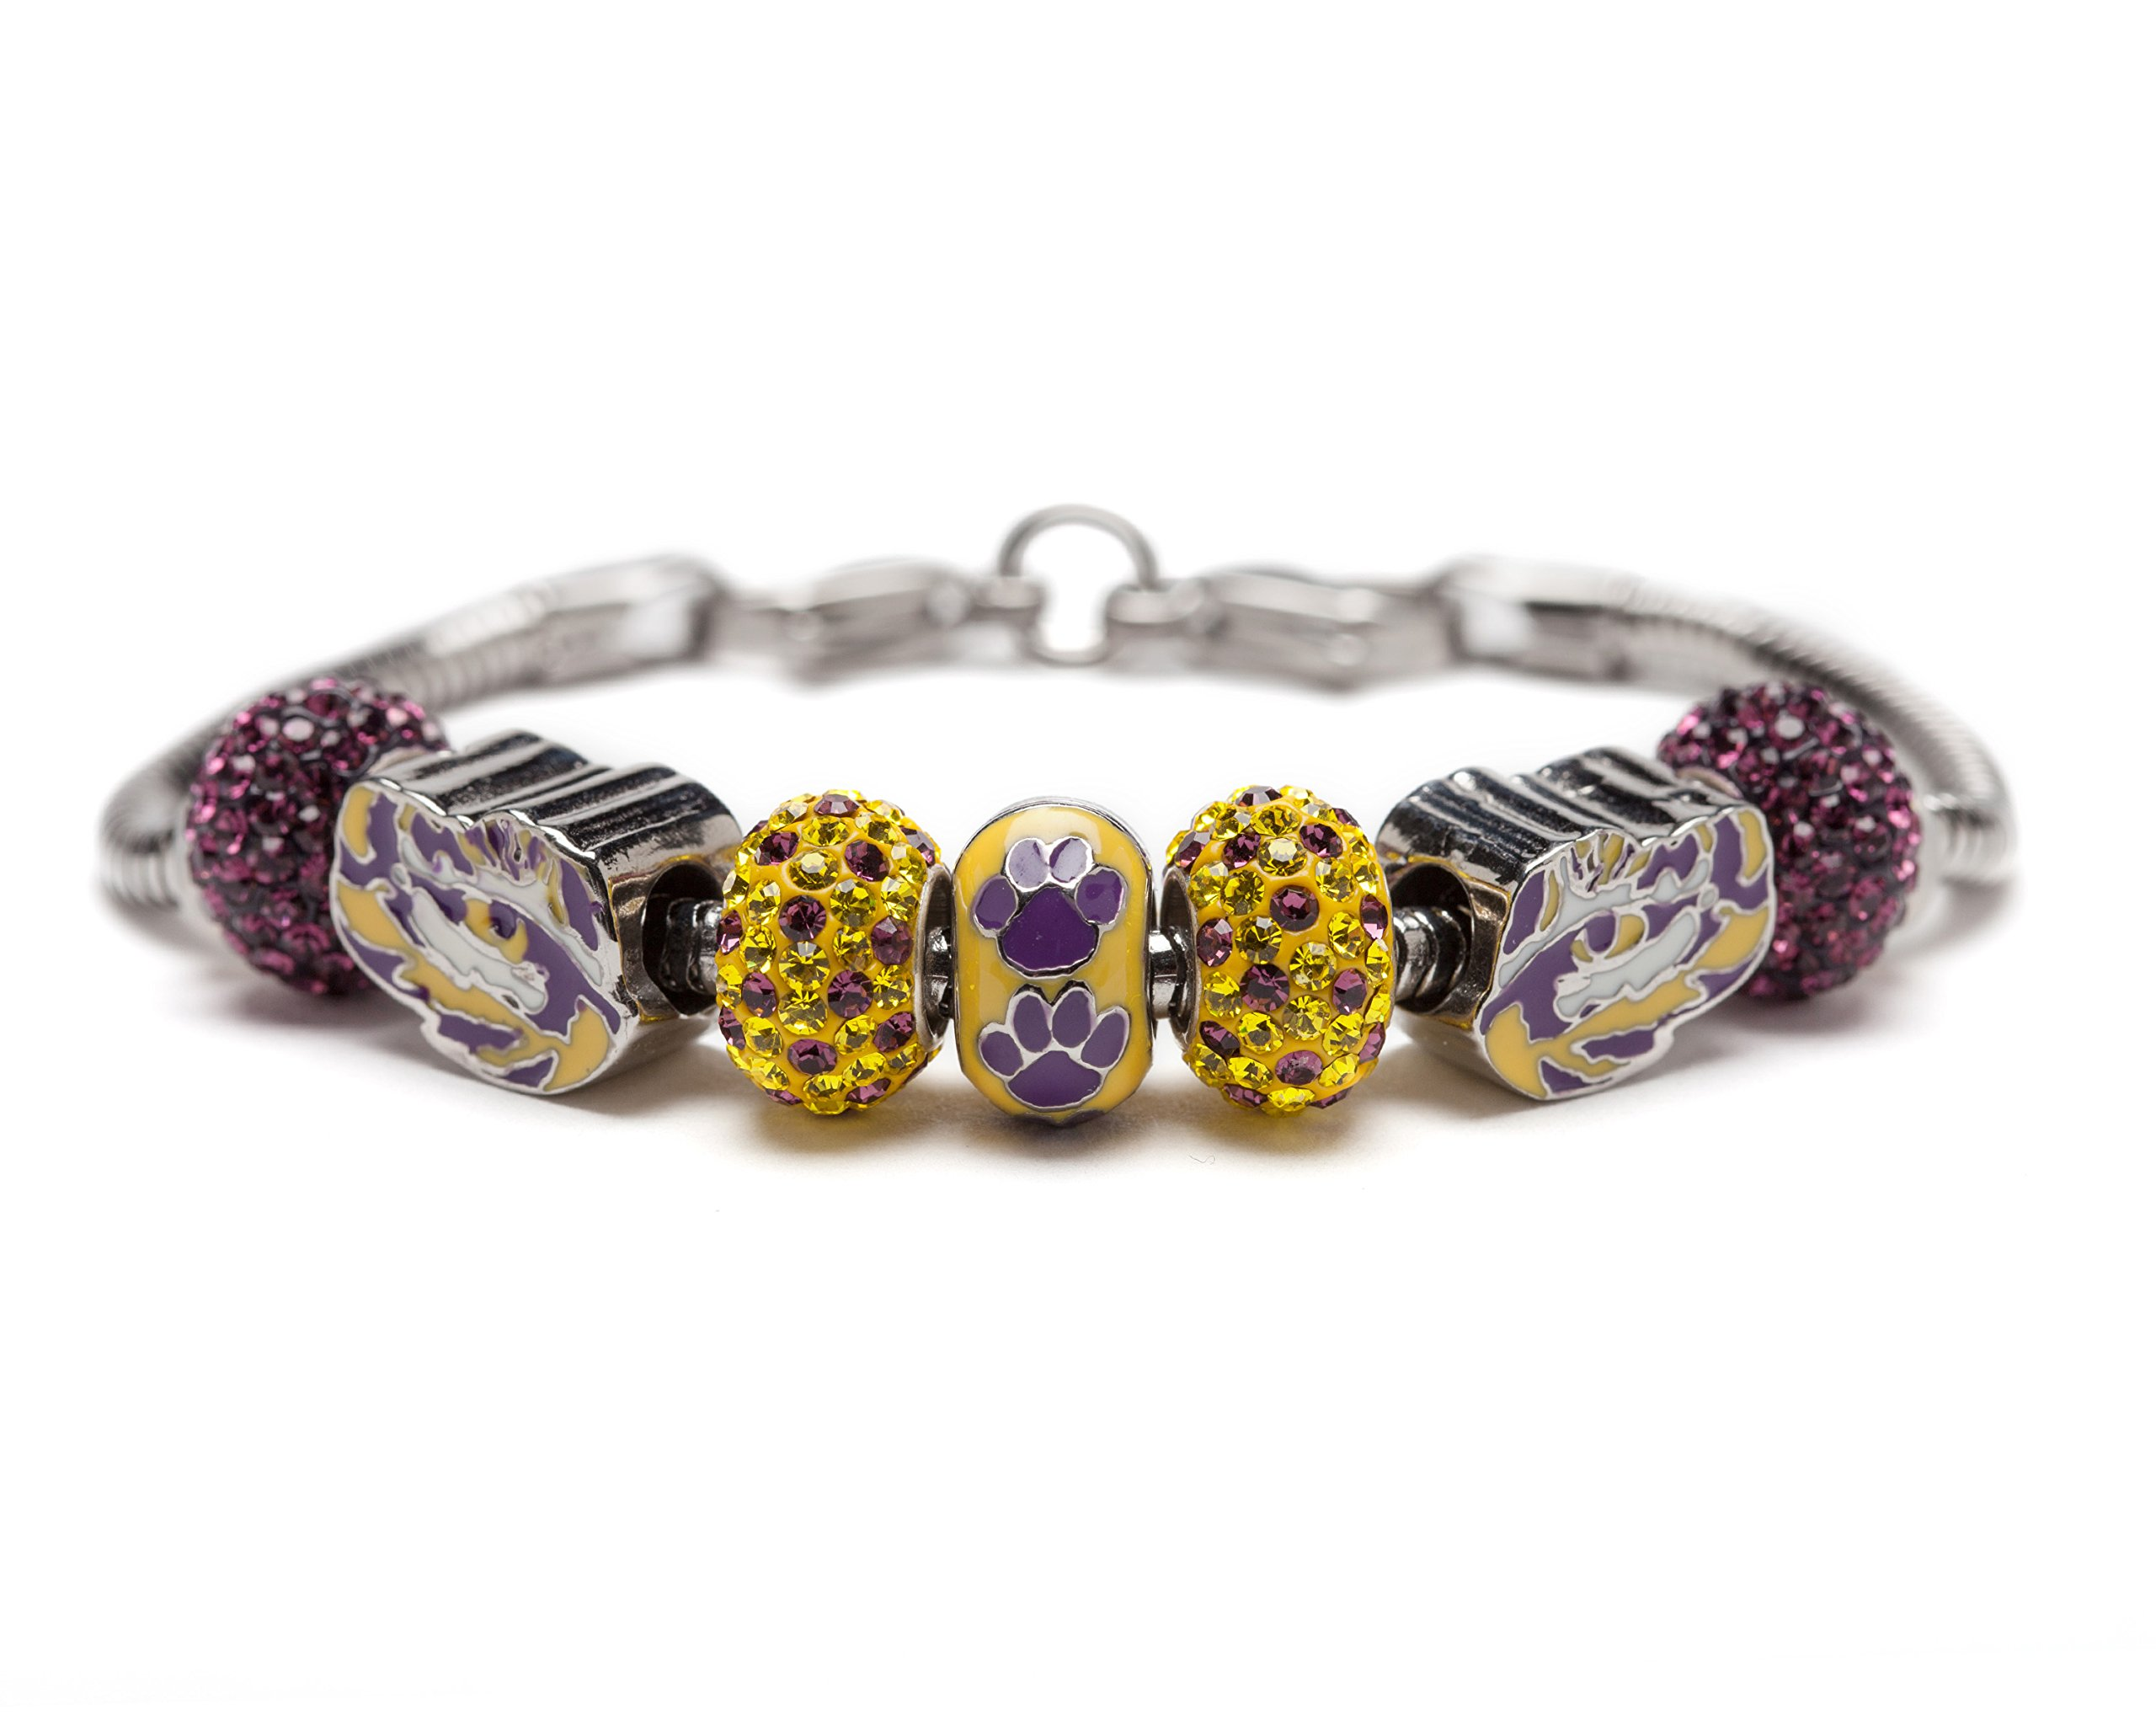 Louisiana State University Charm   LSU Tigers - Bracelet with 3 Tigers Beads and 4 Crystal Charms   Officially Licensed Louisiana State University Jewelry   LSU Charms   Stainless Steel